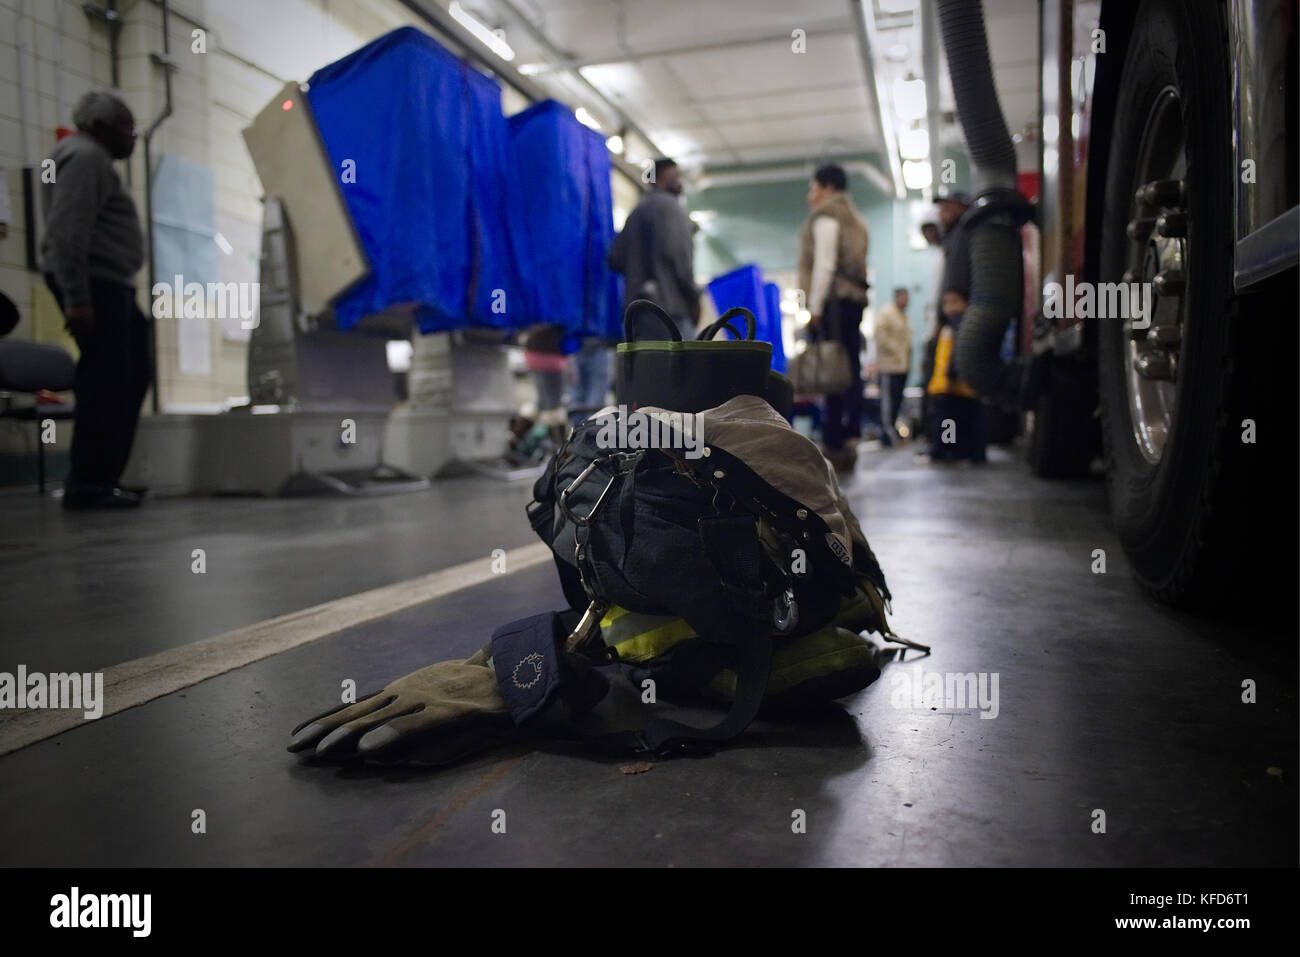 Firefighter gear sits on the ground next to a fire truck on Election Day at a Philadelphia, PA poling station. - Stock Image